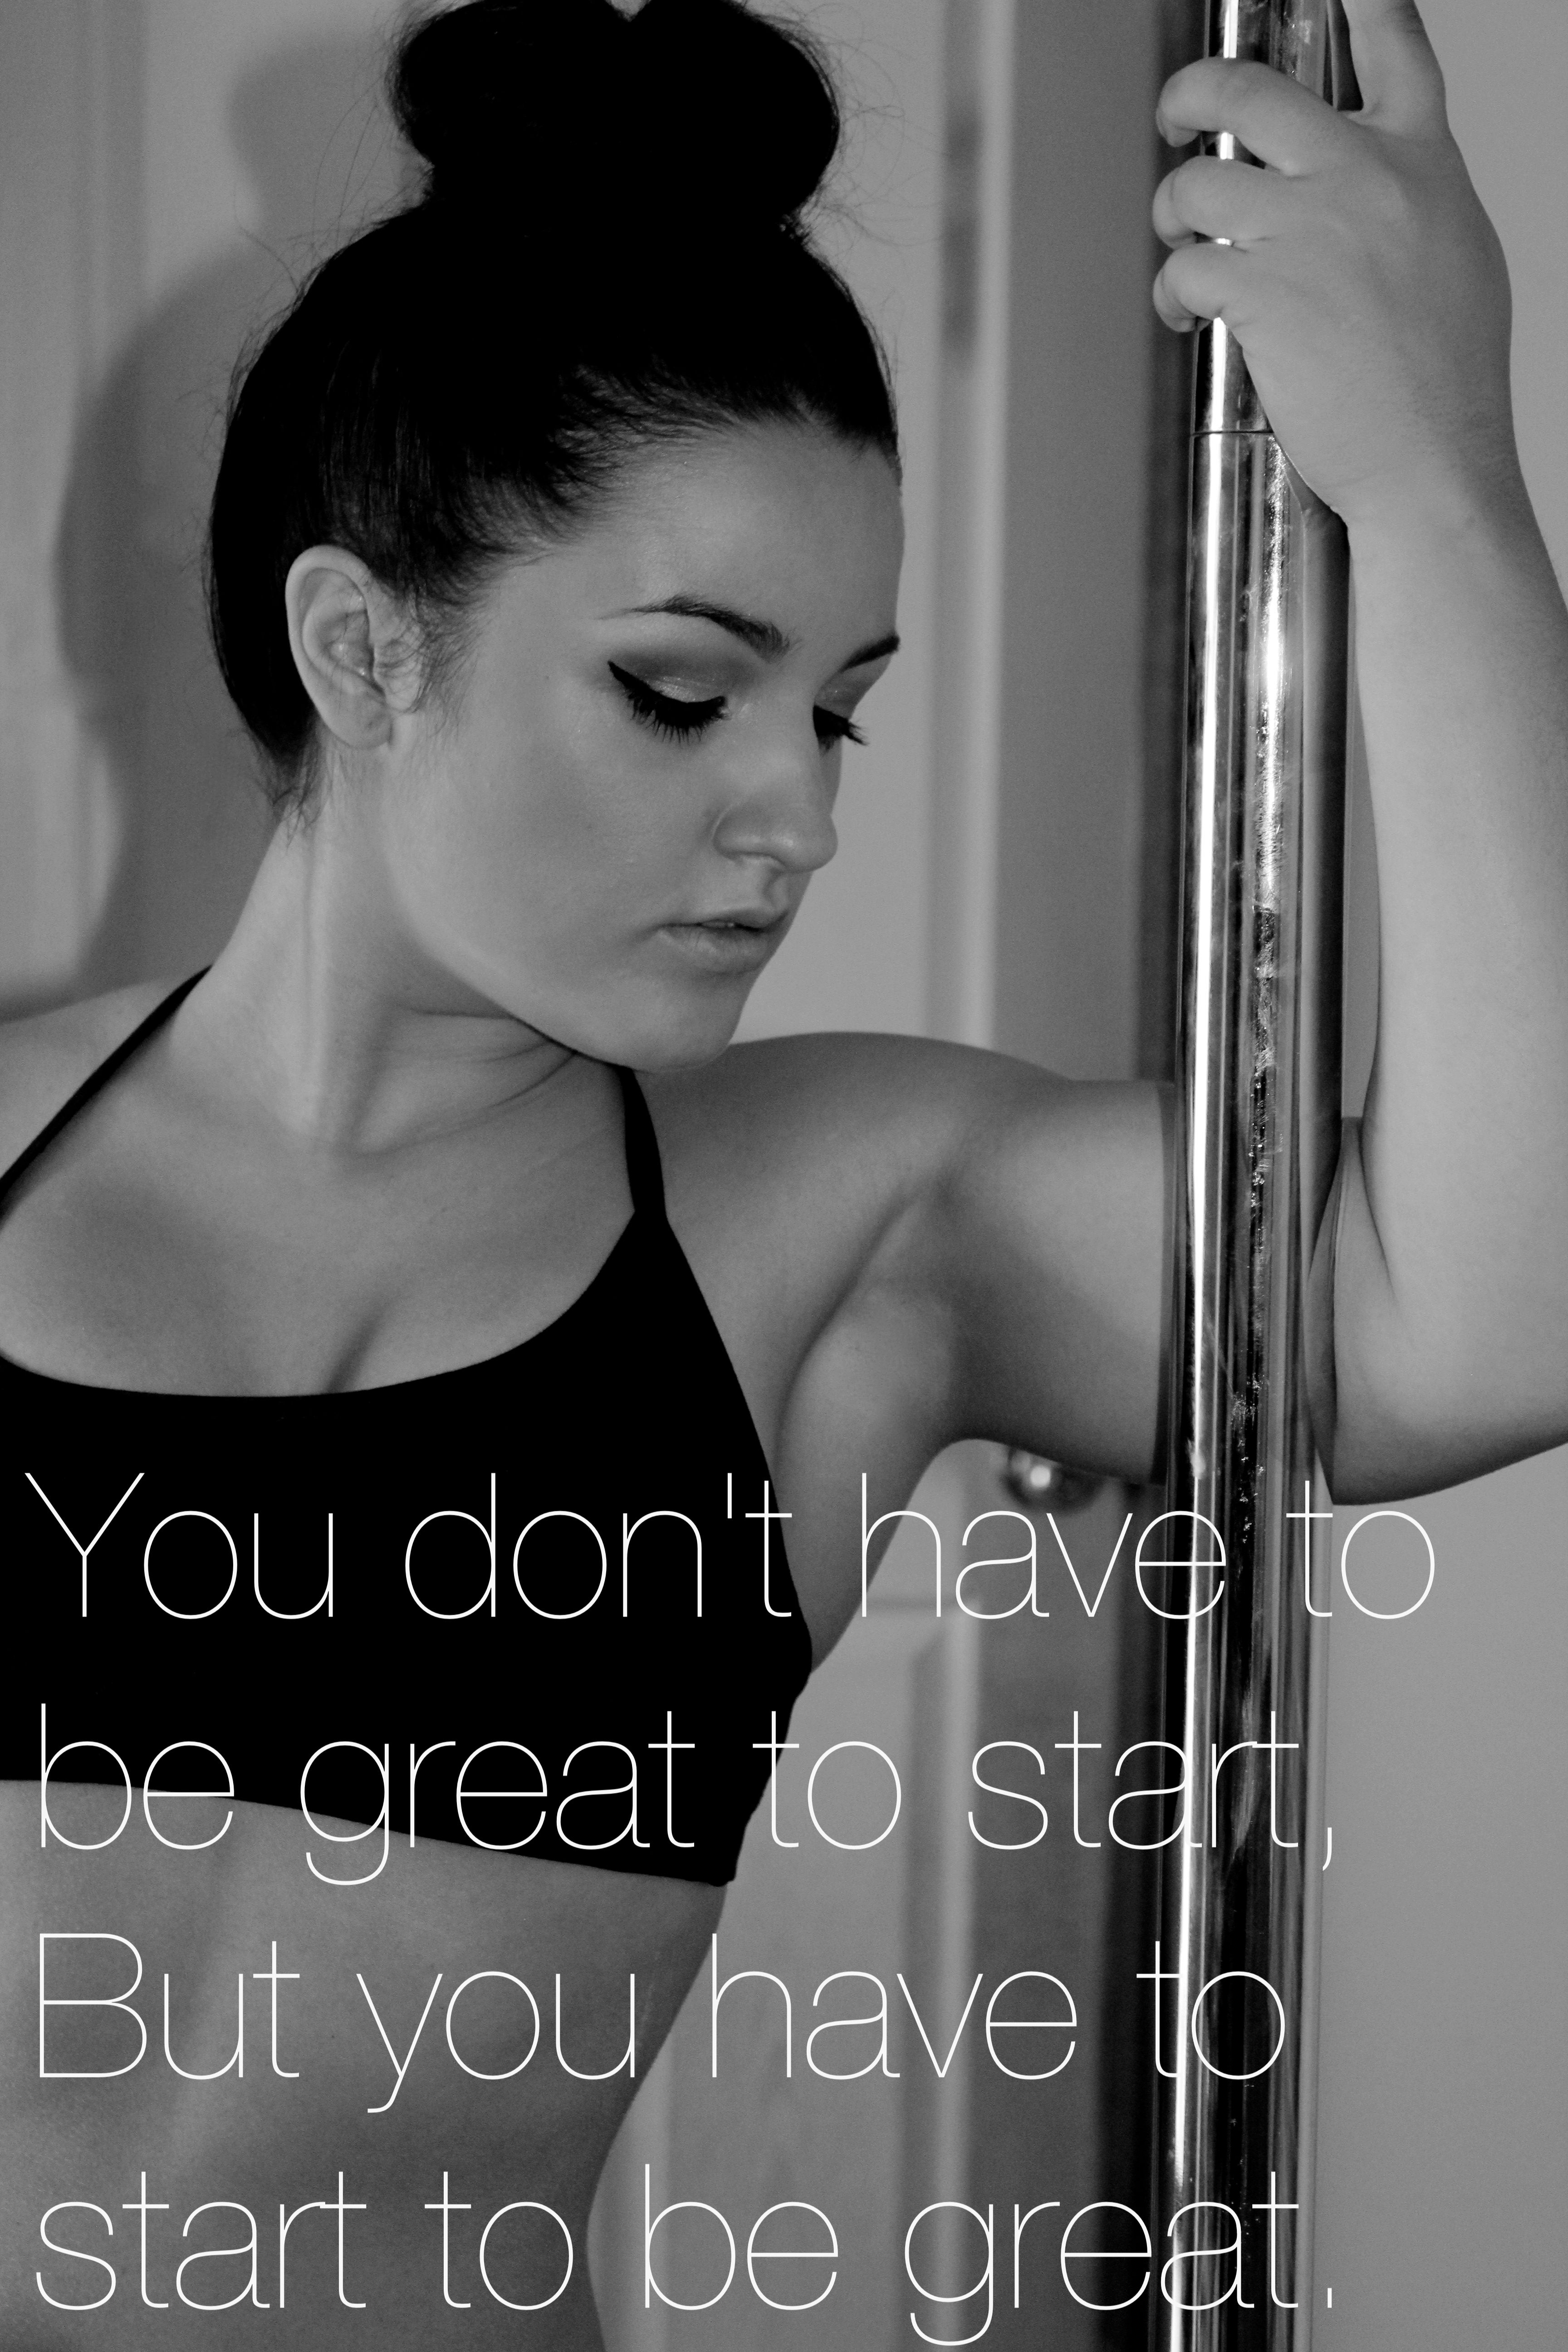 Yes Pole Fitness is difficult but the challenge is